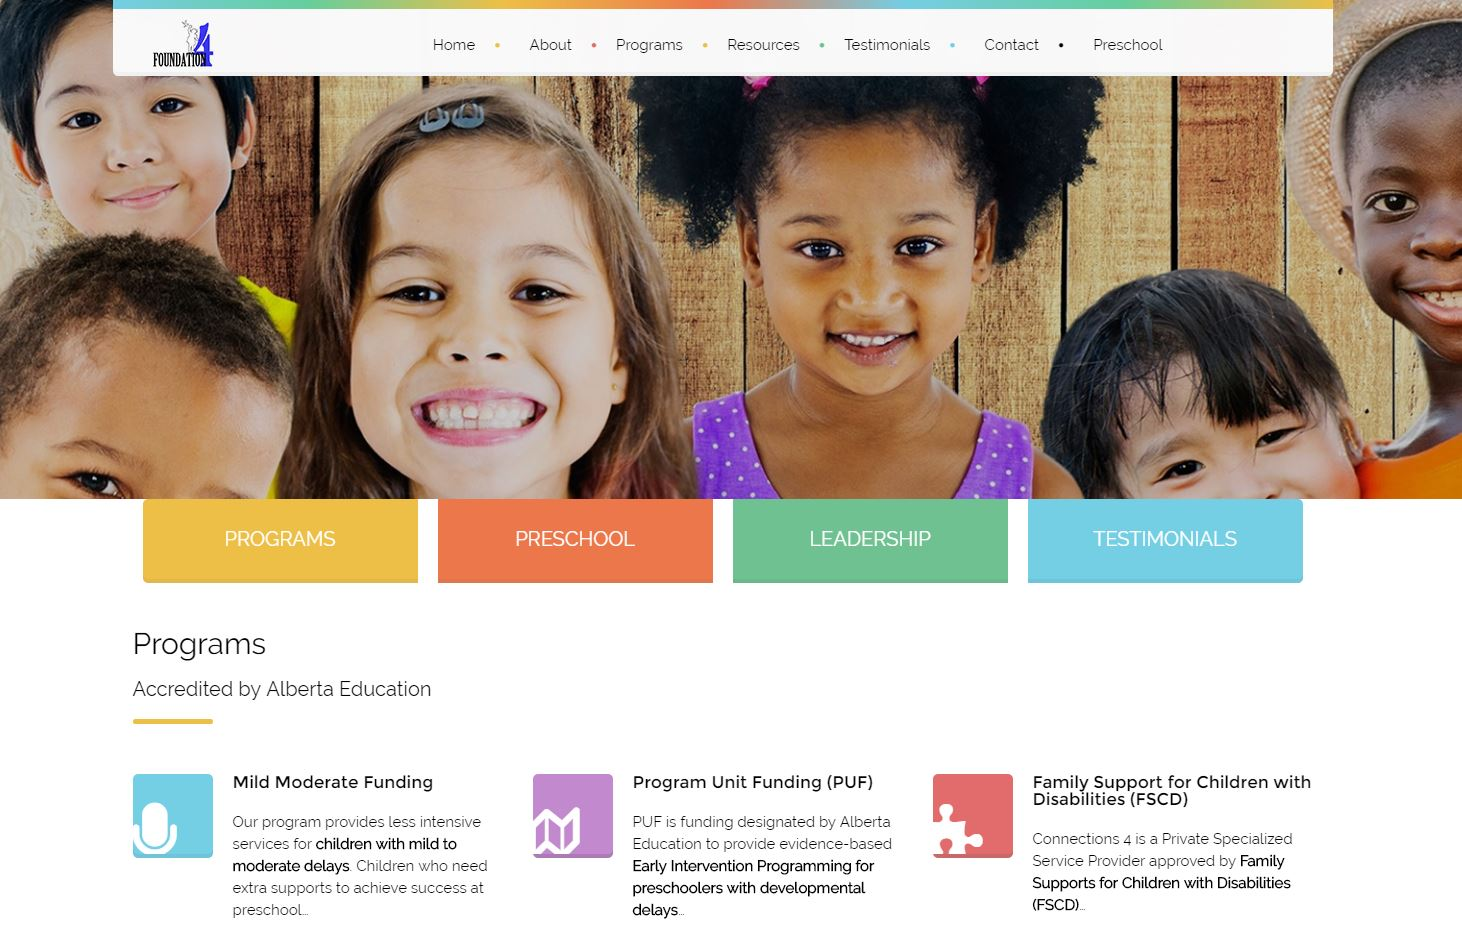 New website for Airdrie Foundation 4 Early Intervention, early childhood services program, Airdrie